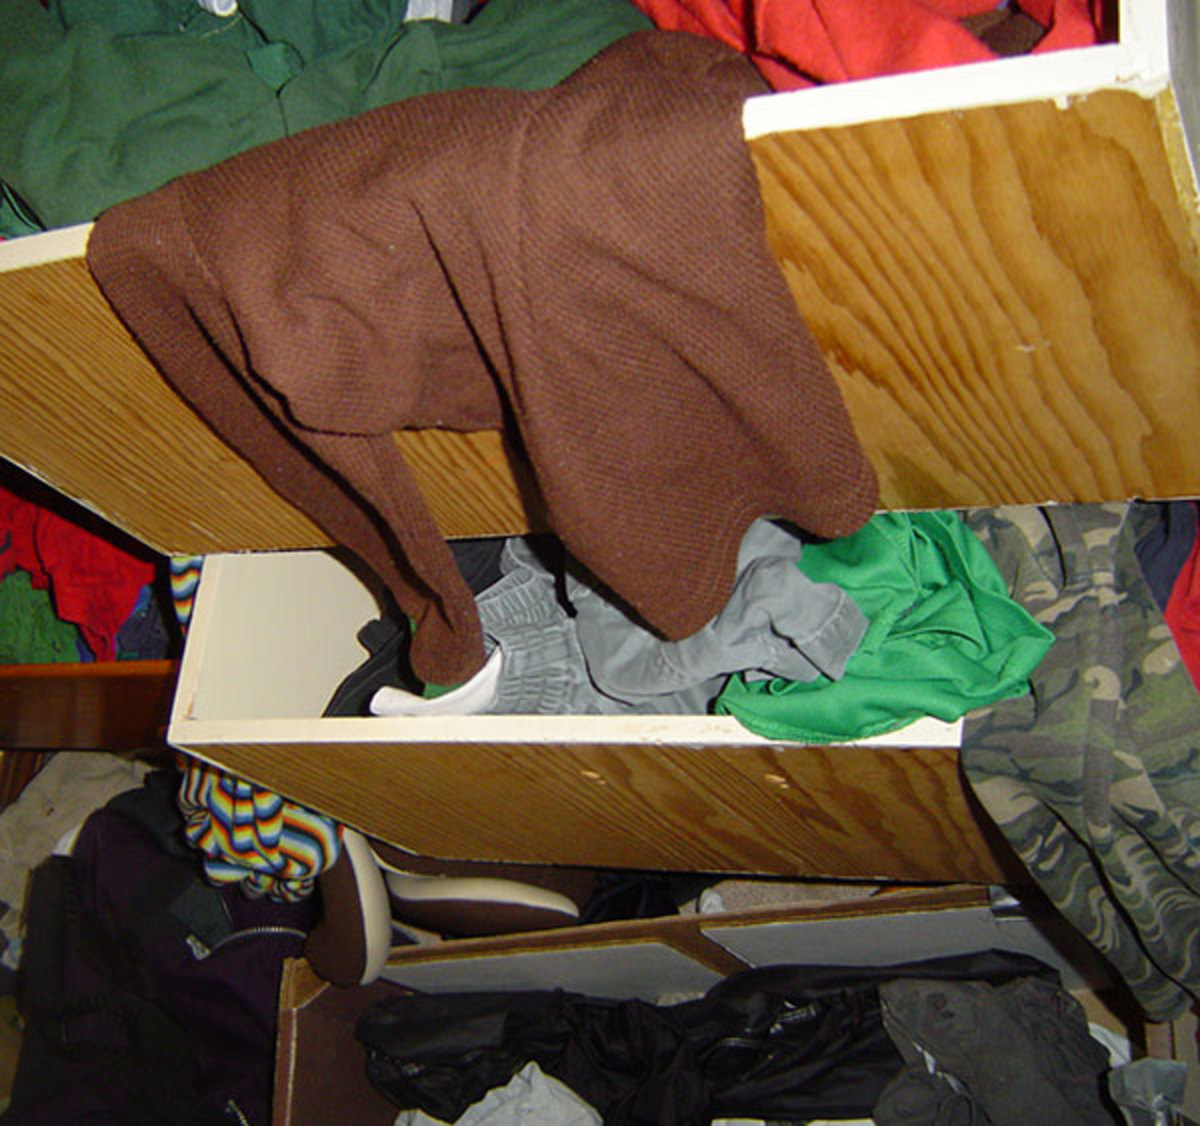 Okay, the closet is a mess, mainly because it has not occurred to our children that all the clothes should fit in the drawers, because they have way too many clothes to fit!